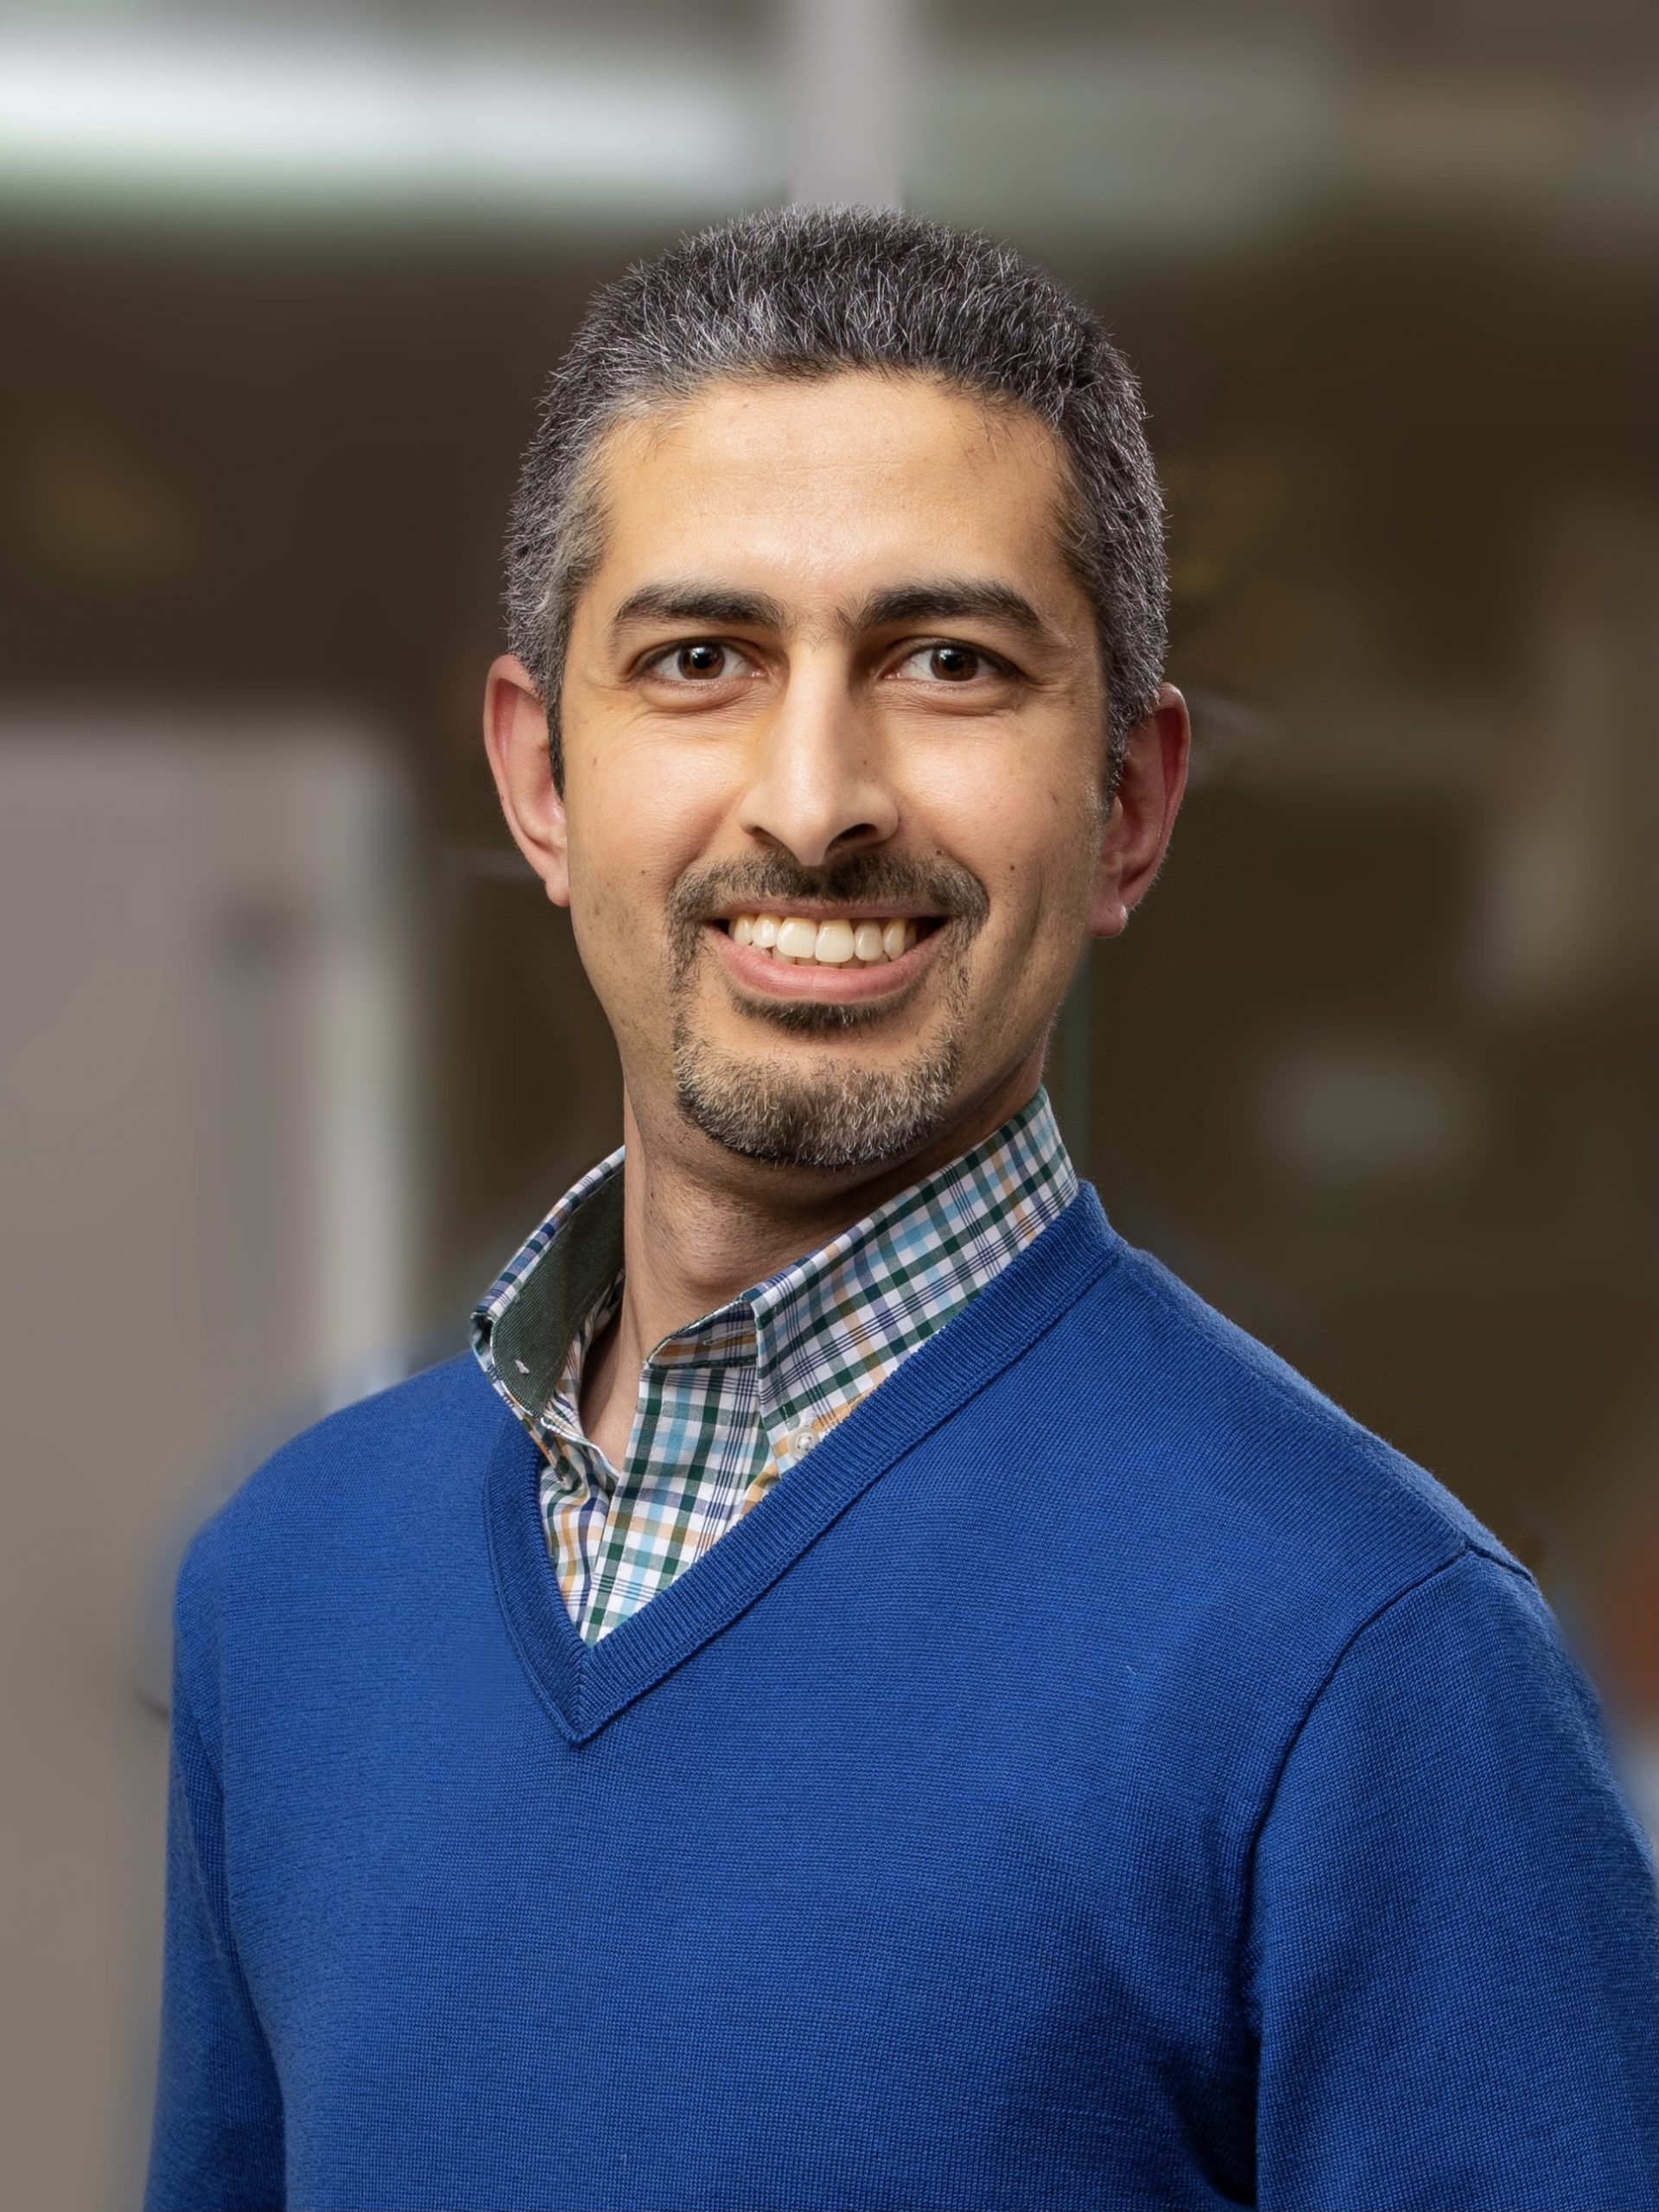 Dr. Omar El-Halfawy's research will contribute to local and global efforts to fight antimicrobial resistance and alleviate the burden of infectious diseases in Saskatchewan. Photo by McMaster University.